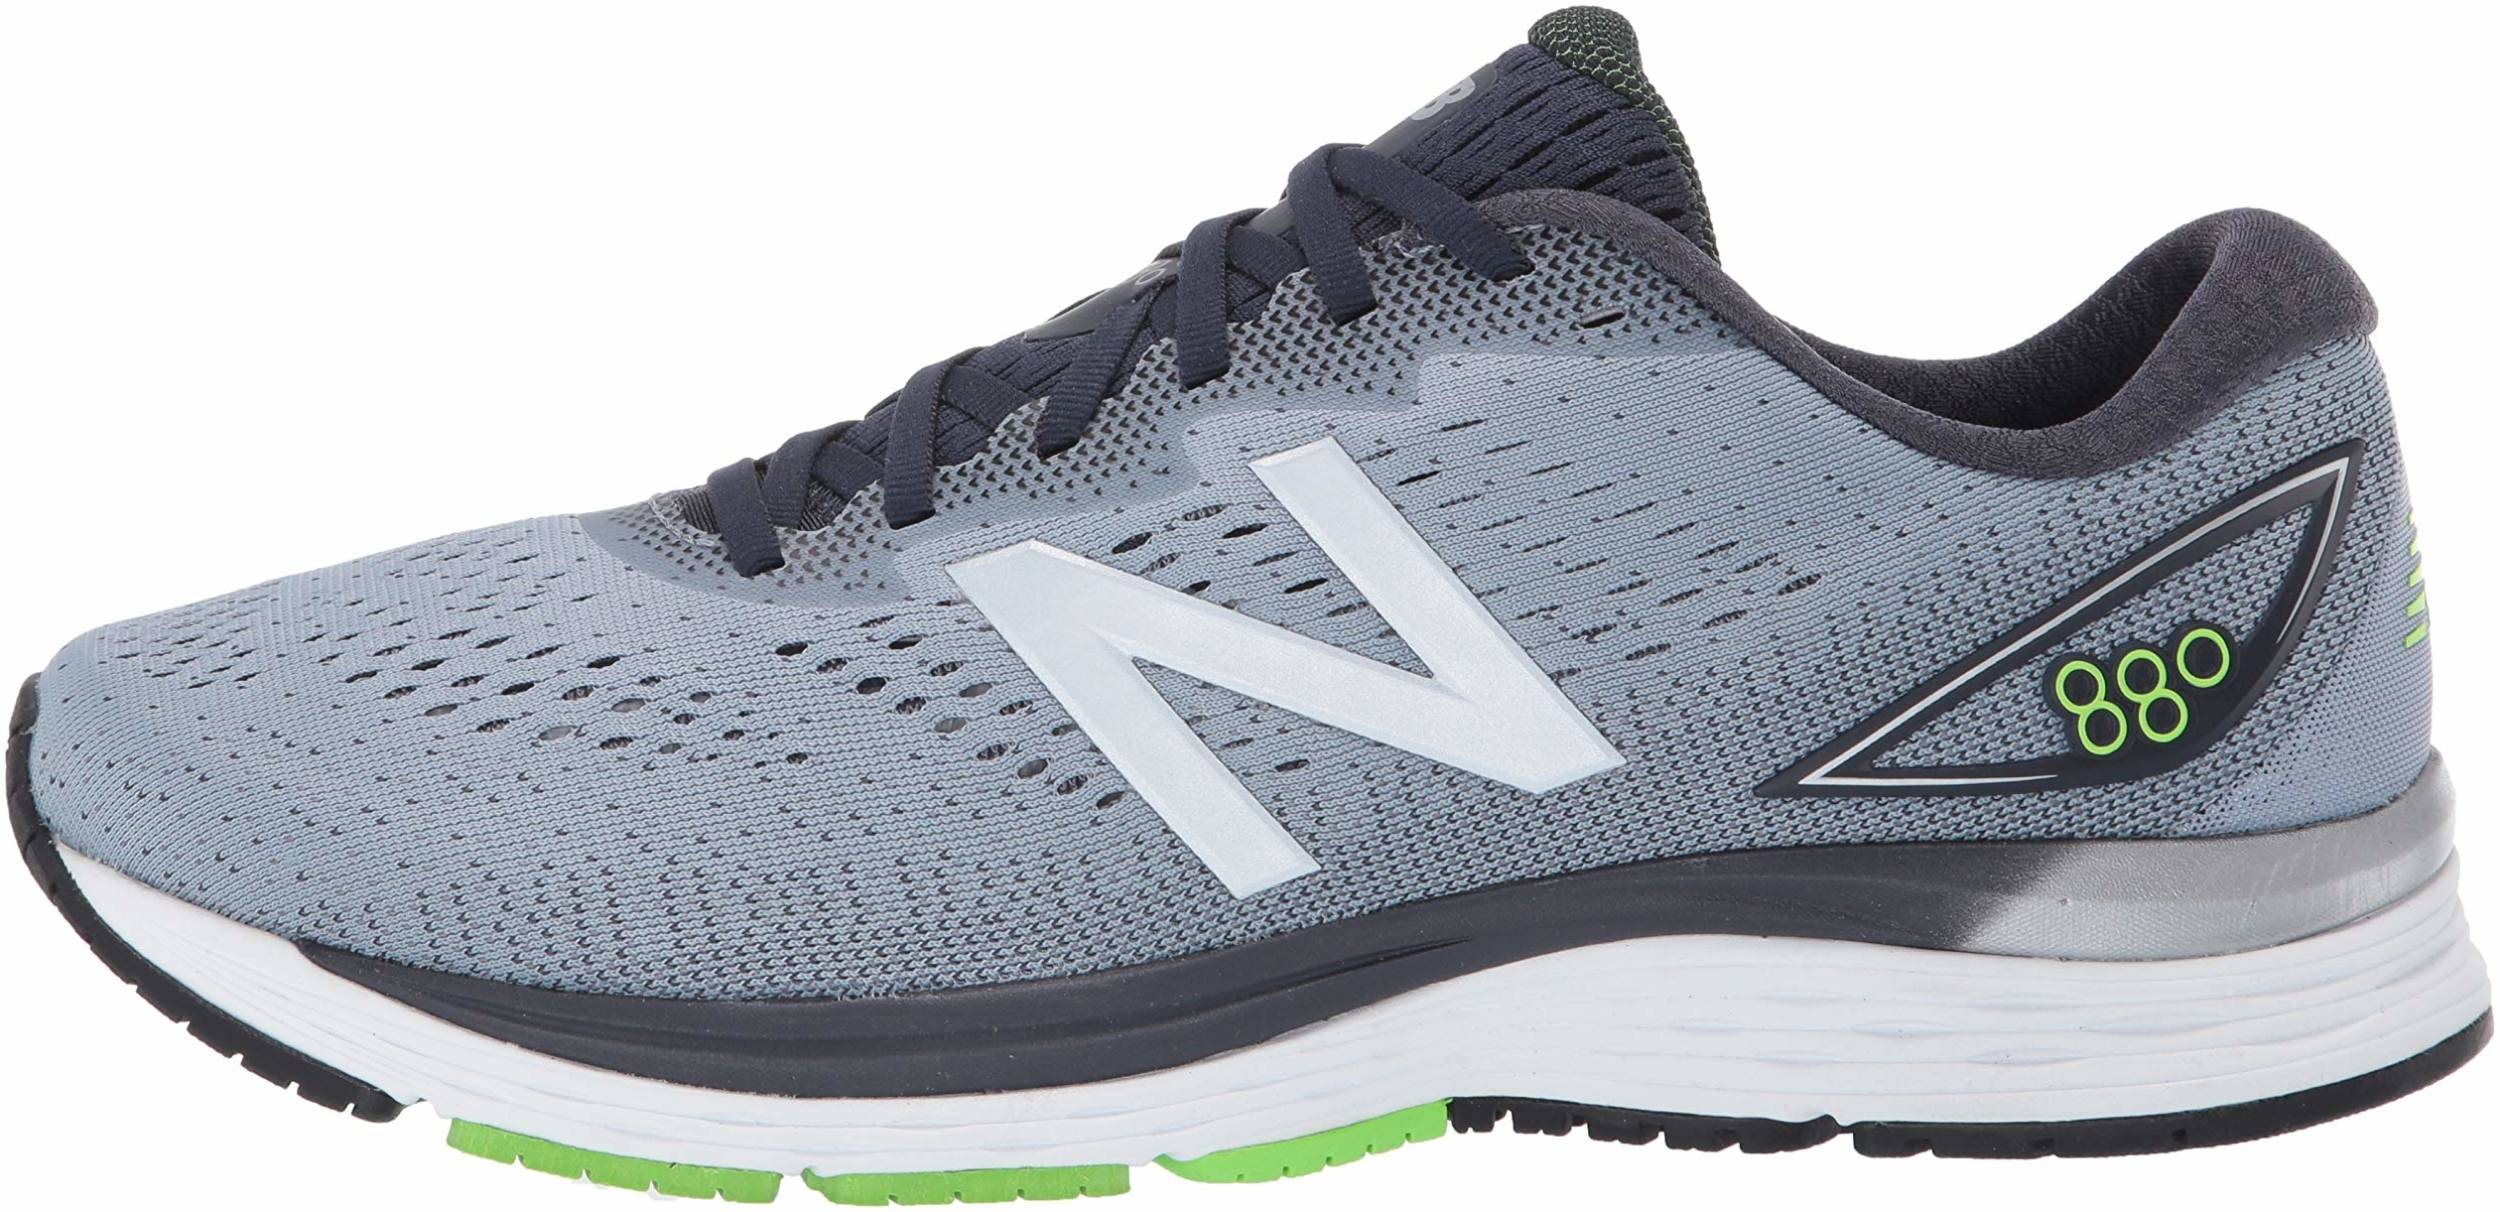 Save 55% on Running Shoes (2398 Models